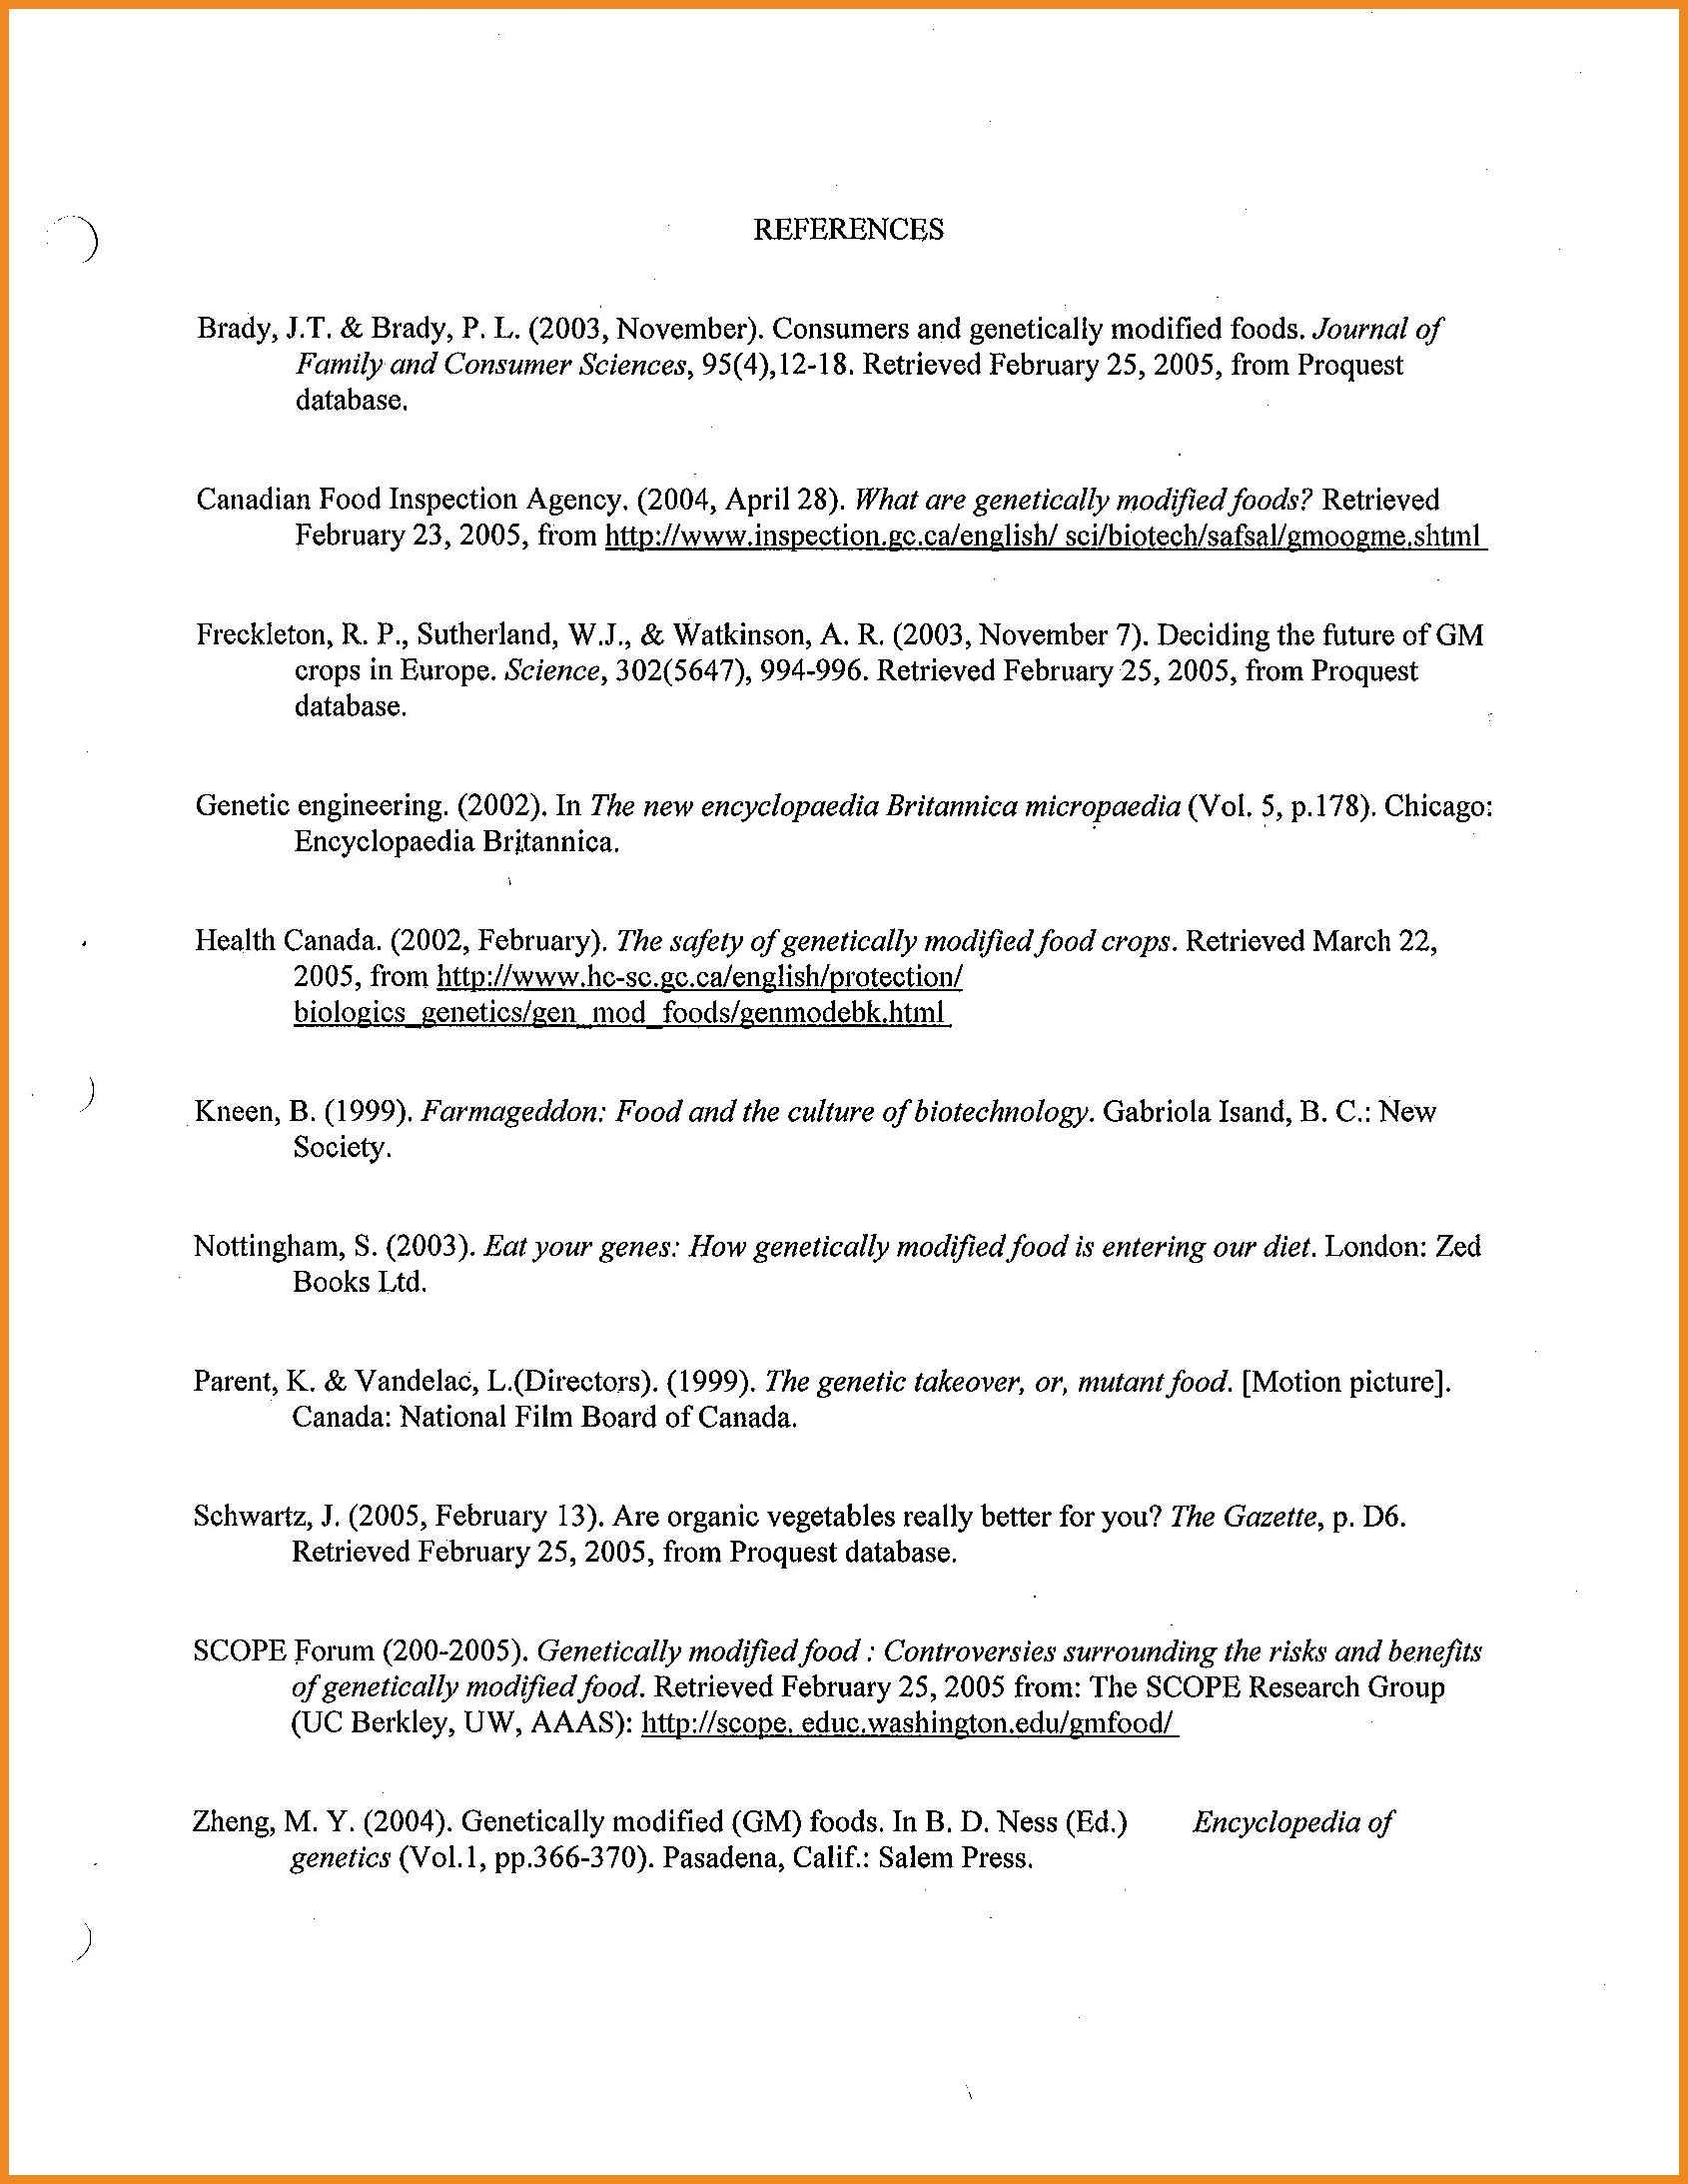 apa format reference page Olala.propx.co